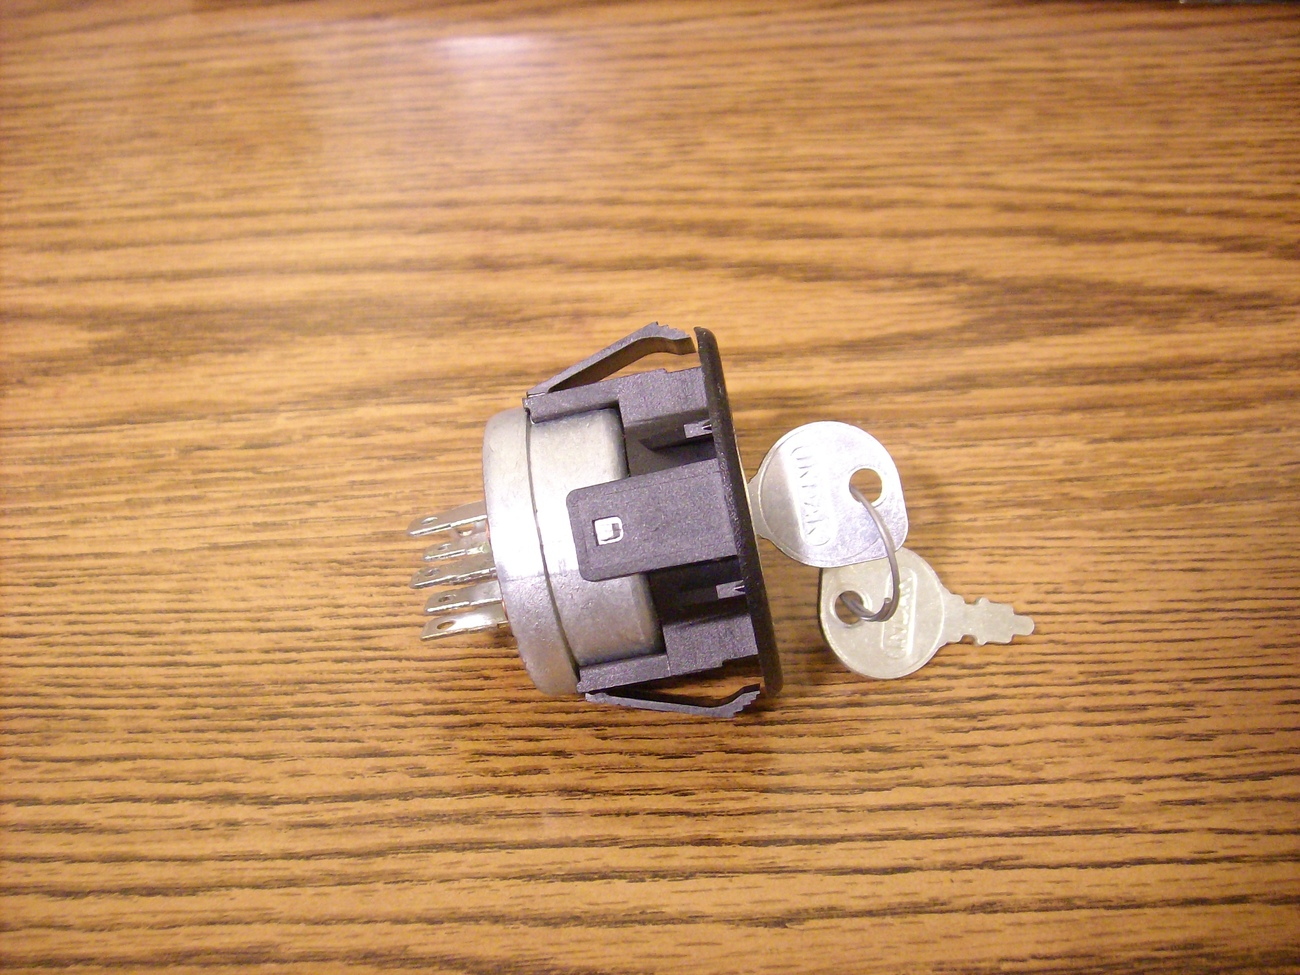 Ignition starter switch for Ariens mini zoom 1640, 1844, 2048, 2252, 1540, 1640